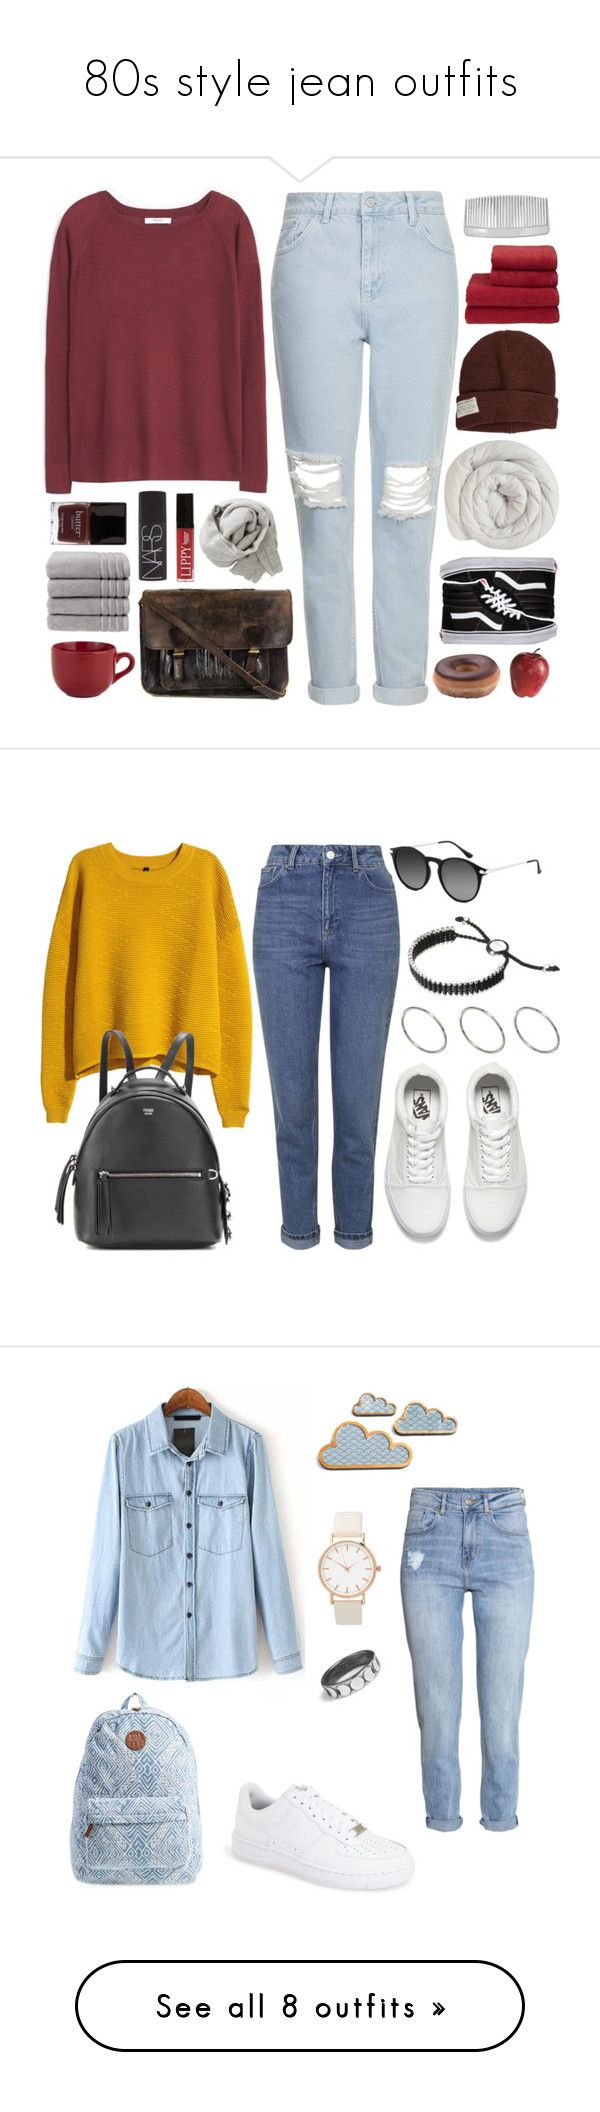 """80s style jean outfits"" by minkimina on Polyvore featuring MANGO, Topshop, Krochet Kids, Butter London, Christy, John Lewis, Vans, Pier 1 Imports, Priestley's Vintage and NARS Cosmetics"